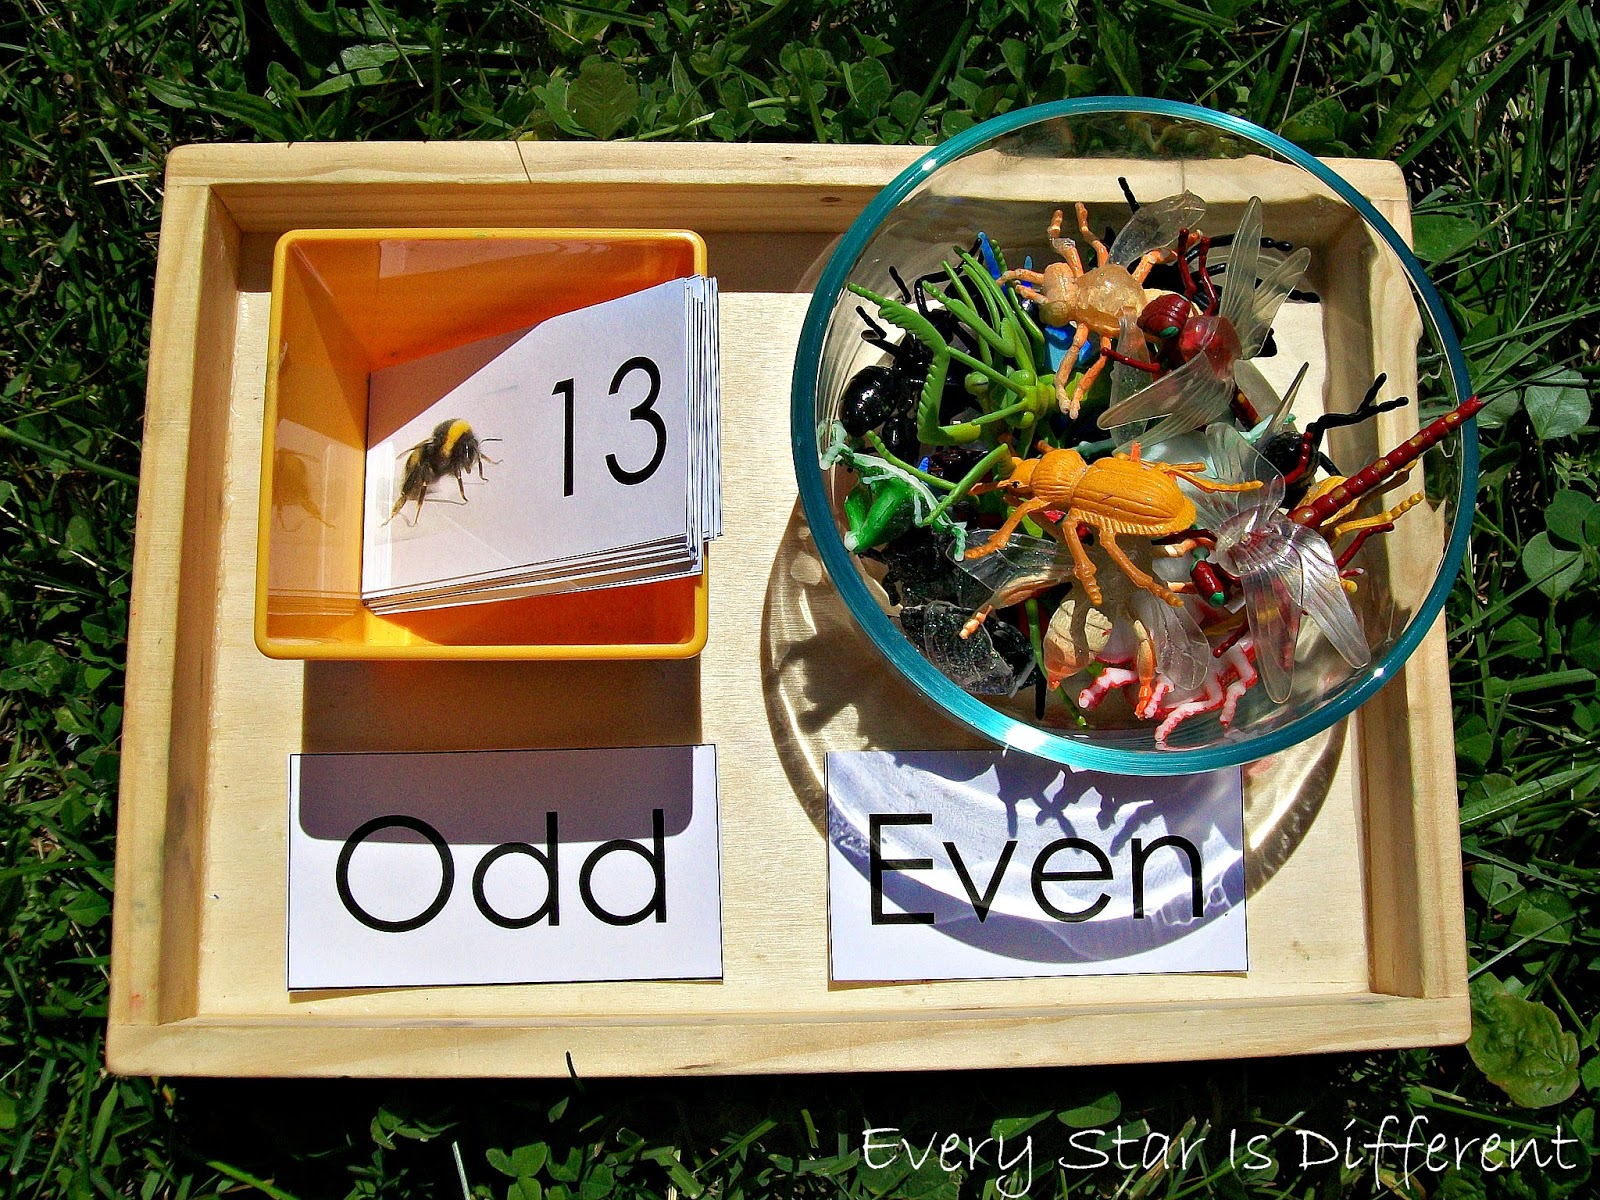 Insect themed odd and even numbers activity for kids (free printable)